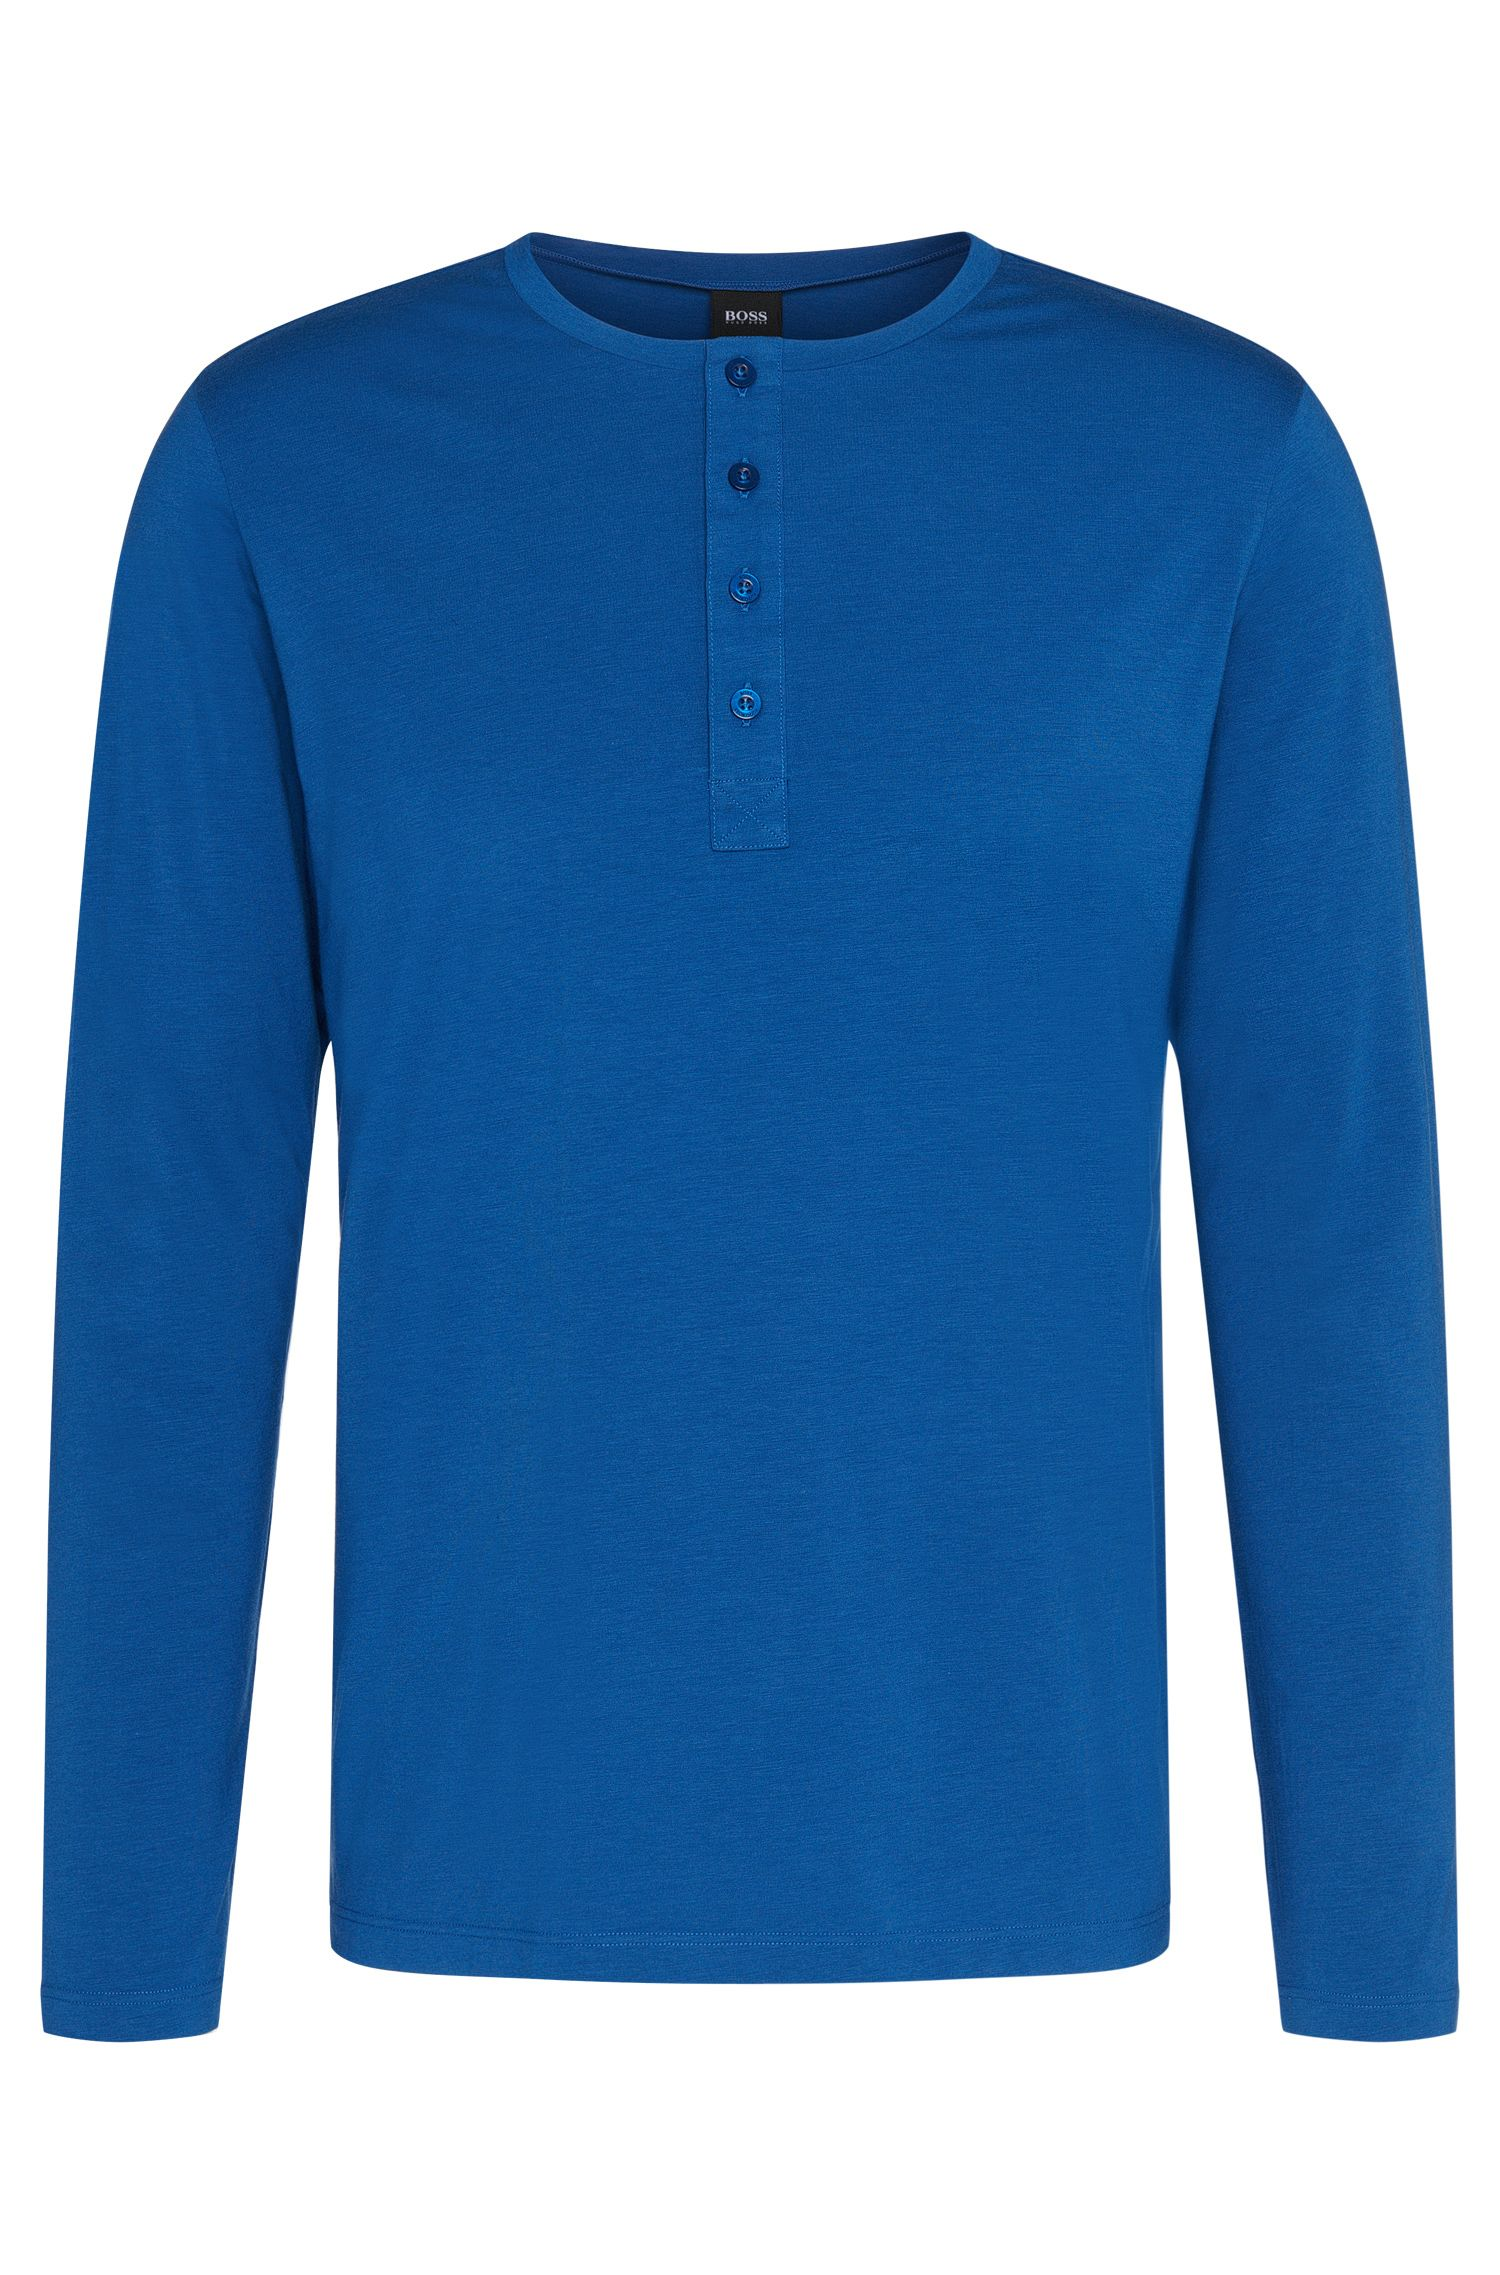 Long-sleeved shirt in cotton blend: 'Shirt LSBP Balance'